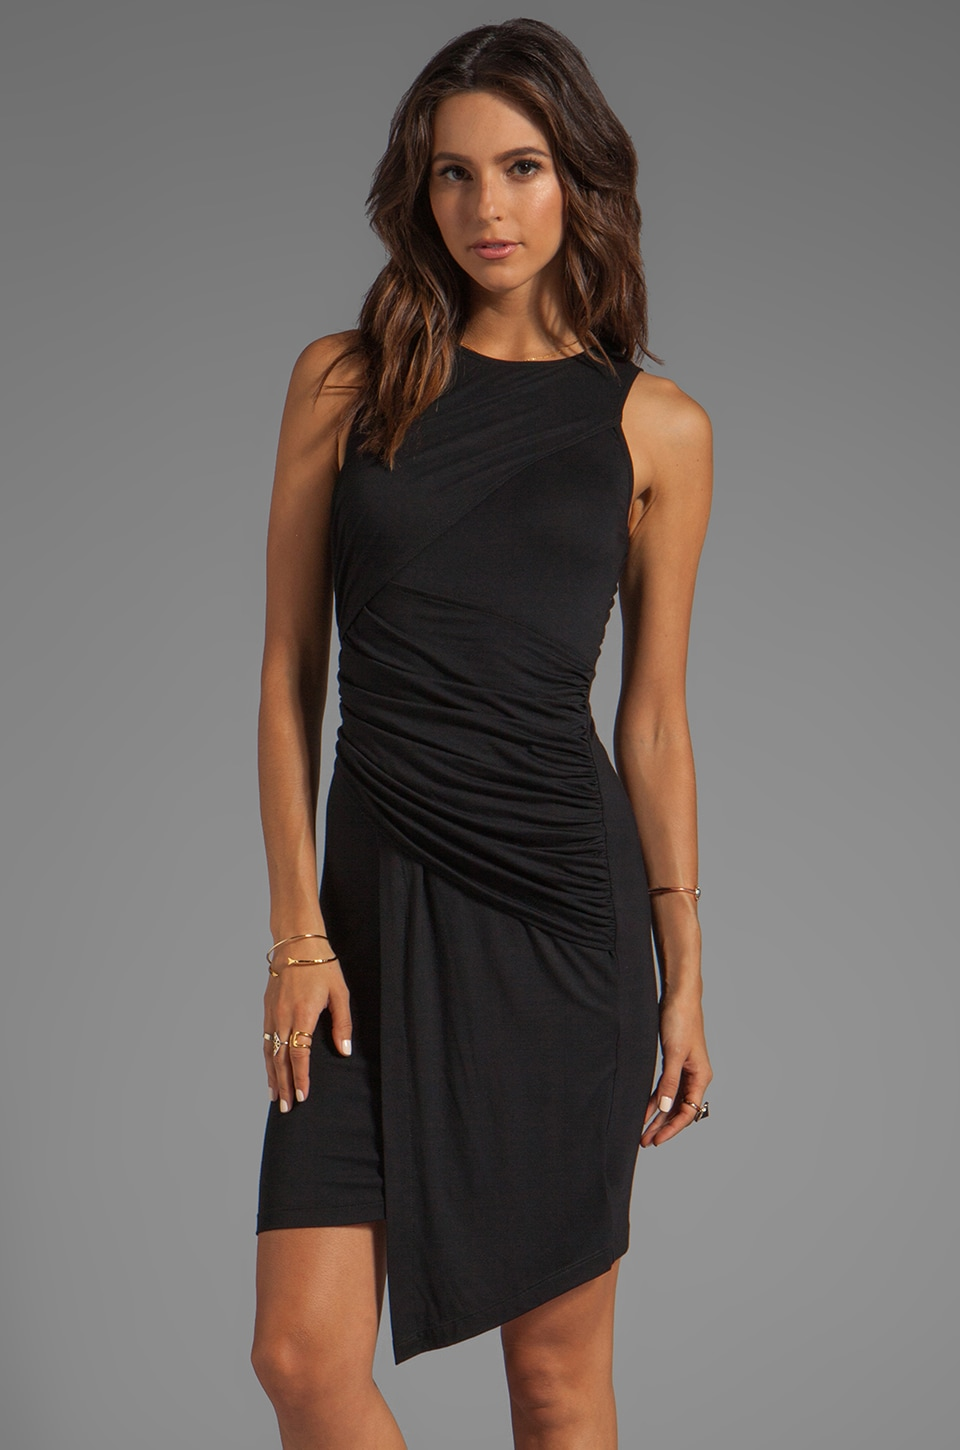 Kain Mariposa Dress in Black